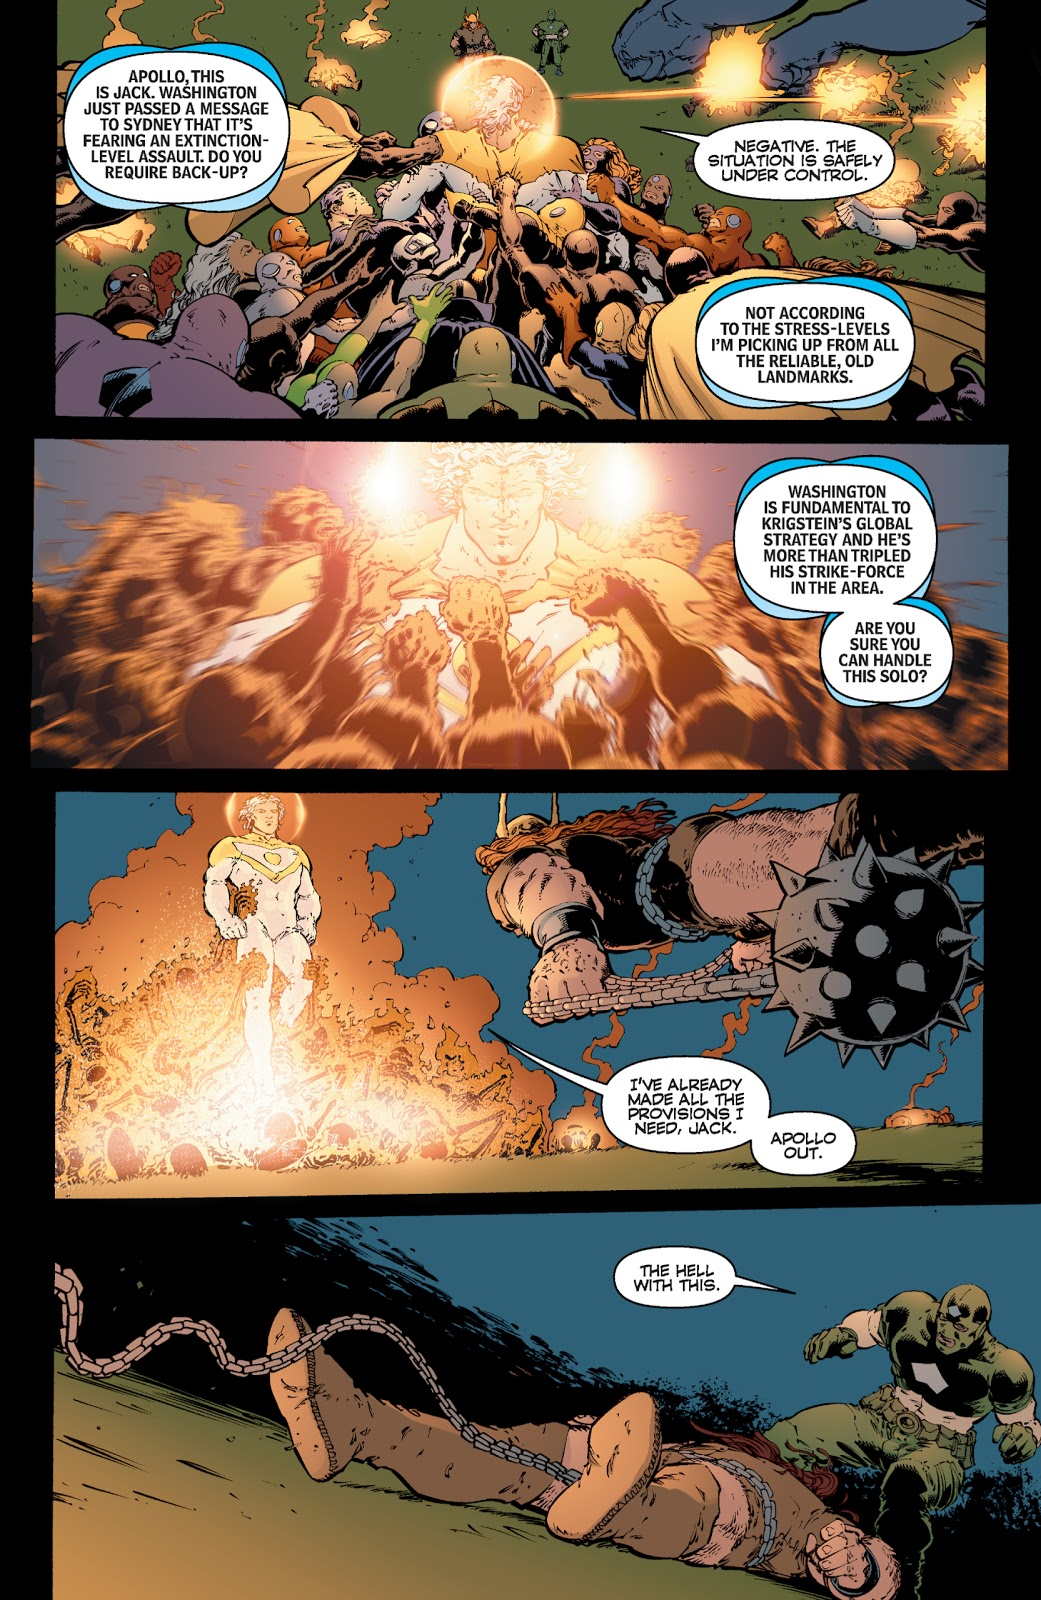 In 'The Authority' (2000) #16, Apollo incinerates The Americans with his laser vision.